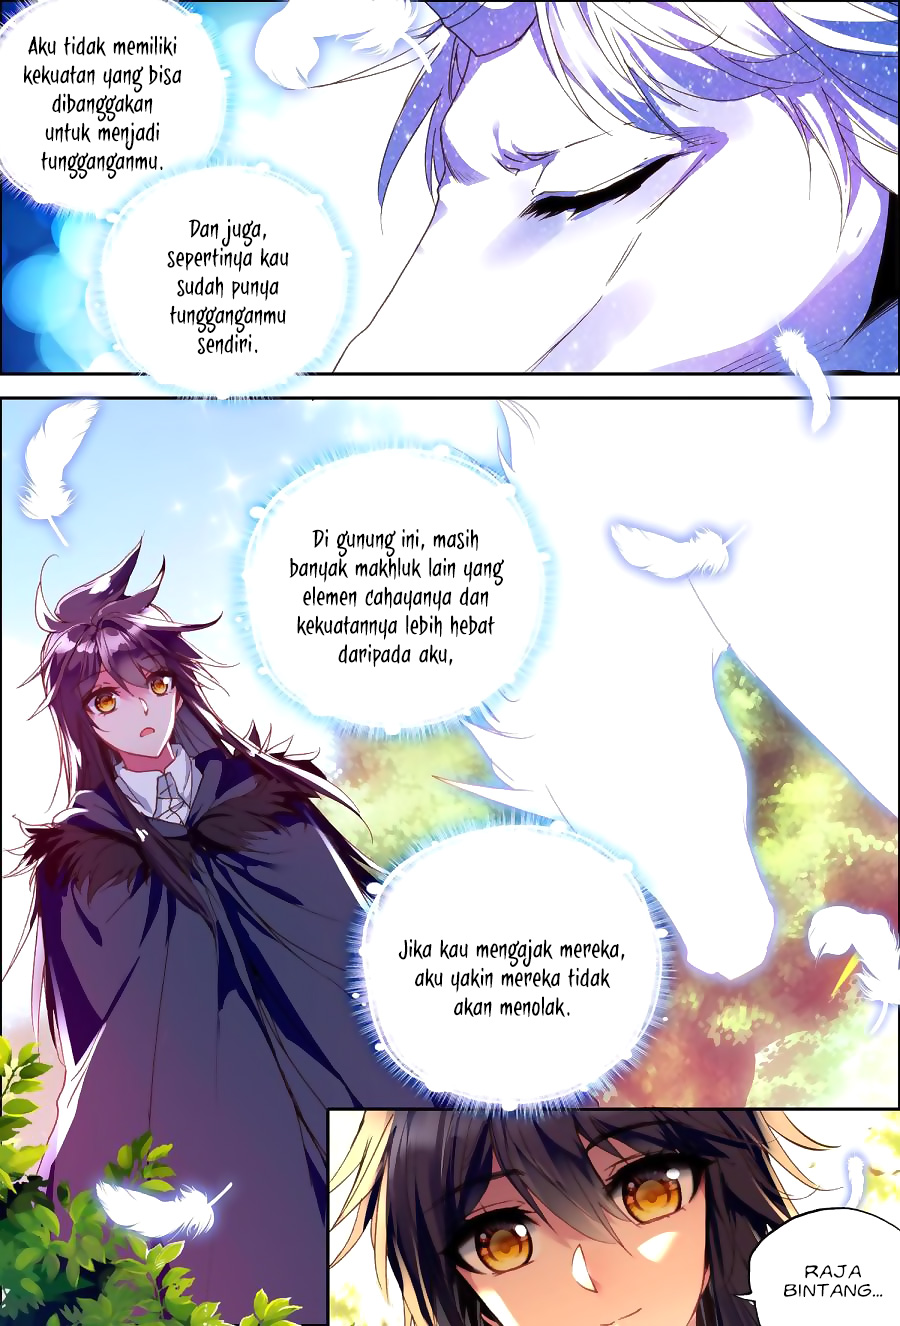 Komik shen yin wang zuo 152 - chapter 152 153 Indonesia shen yin wang zuo 152 - chapter 152 Terbaru 5|Baca Manga Komik Indonesia